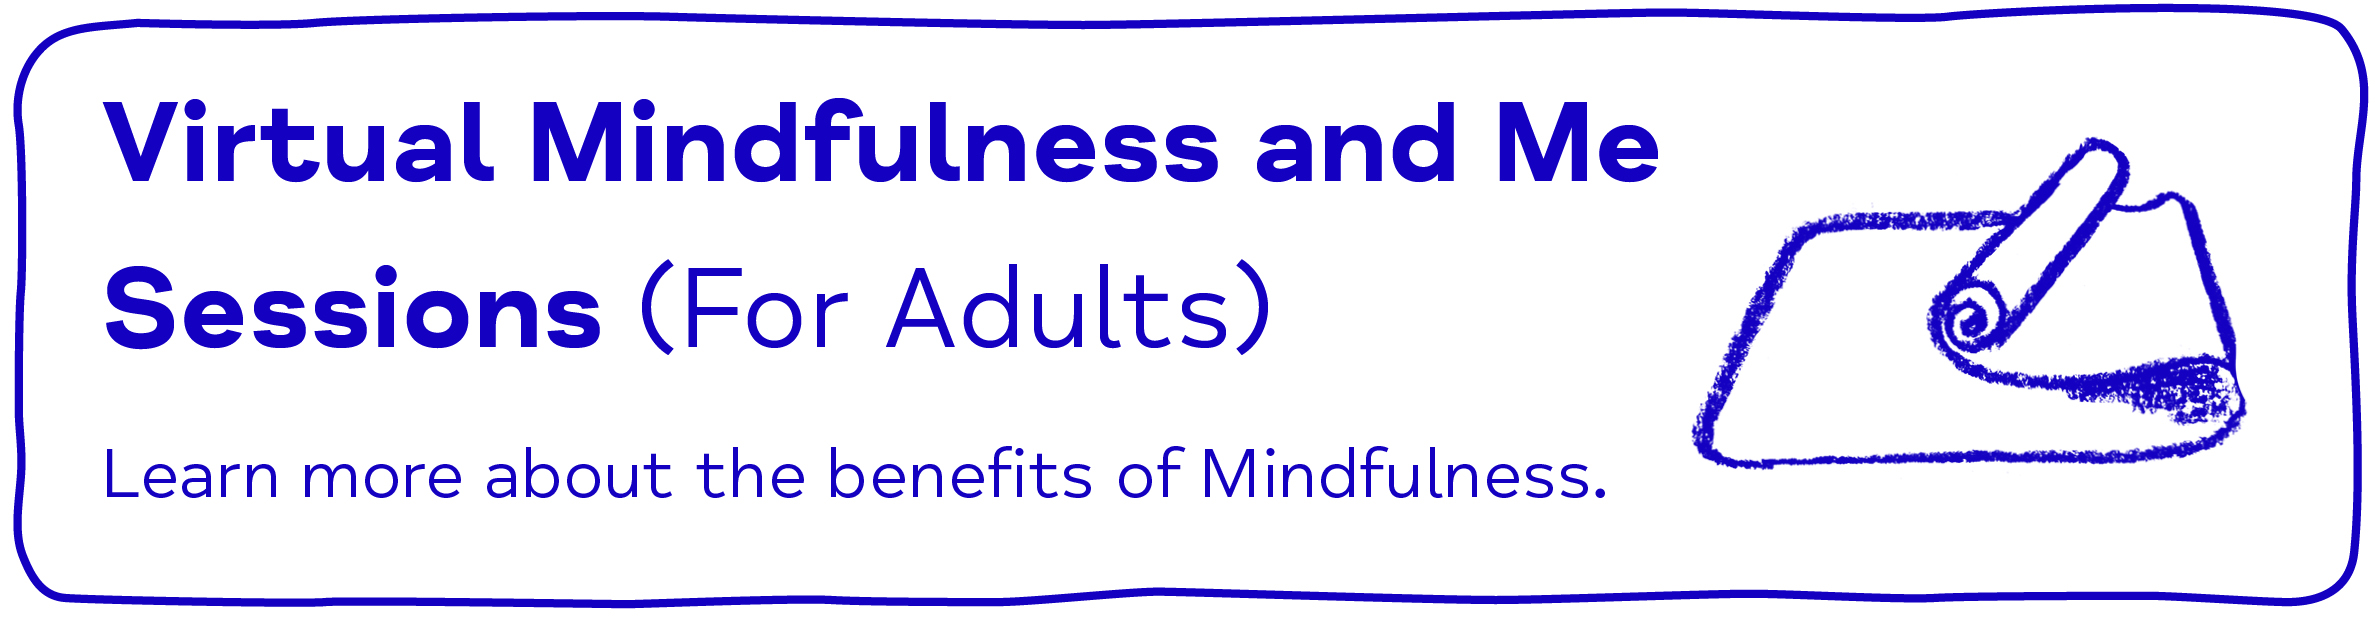 Virtual Mindfulness and Me Sessions (For Adults). Learn more about the benefits of Mindfulness